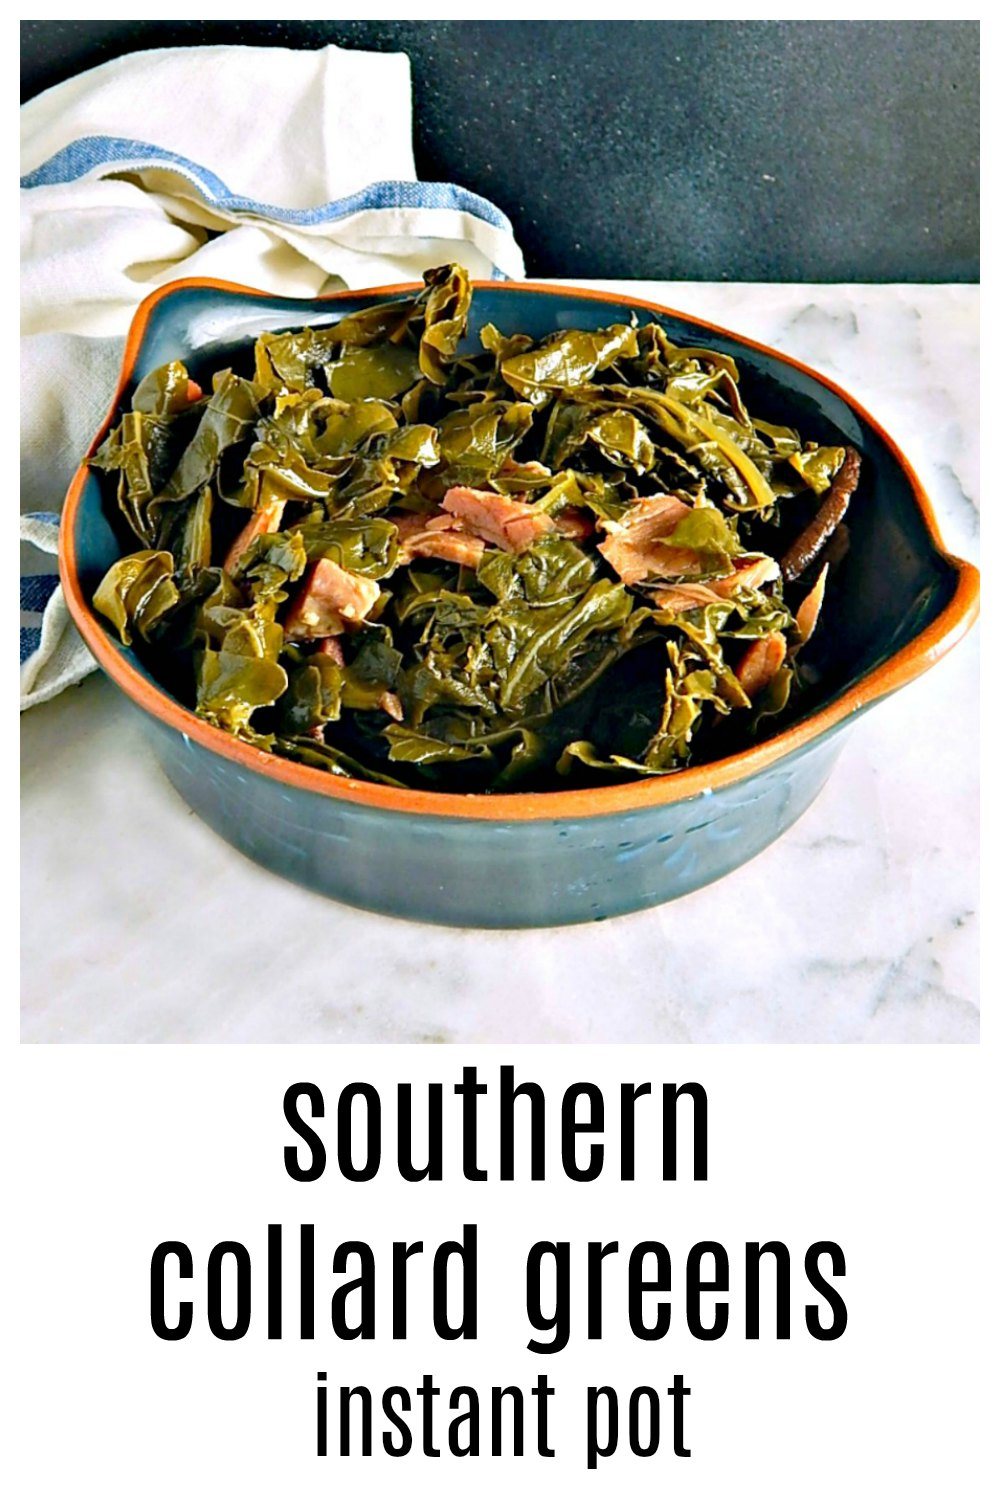 Instant Pot Southern Collard Greens take a fraction of the time (but still the same amount of love) to make! Grandma would be proud! If you use anything with a bone, give it a head start! Can be made with bones, with ham or just with broth if you'd like. #InstantPotCollards #SouthernCollards #OldFashionedCollards #CollardsTurkeyLeg #CollardsHamHock #InstantPotSouthernCollards #InstantPotGreens